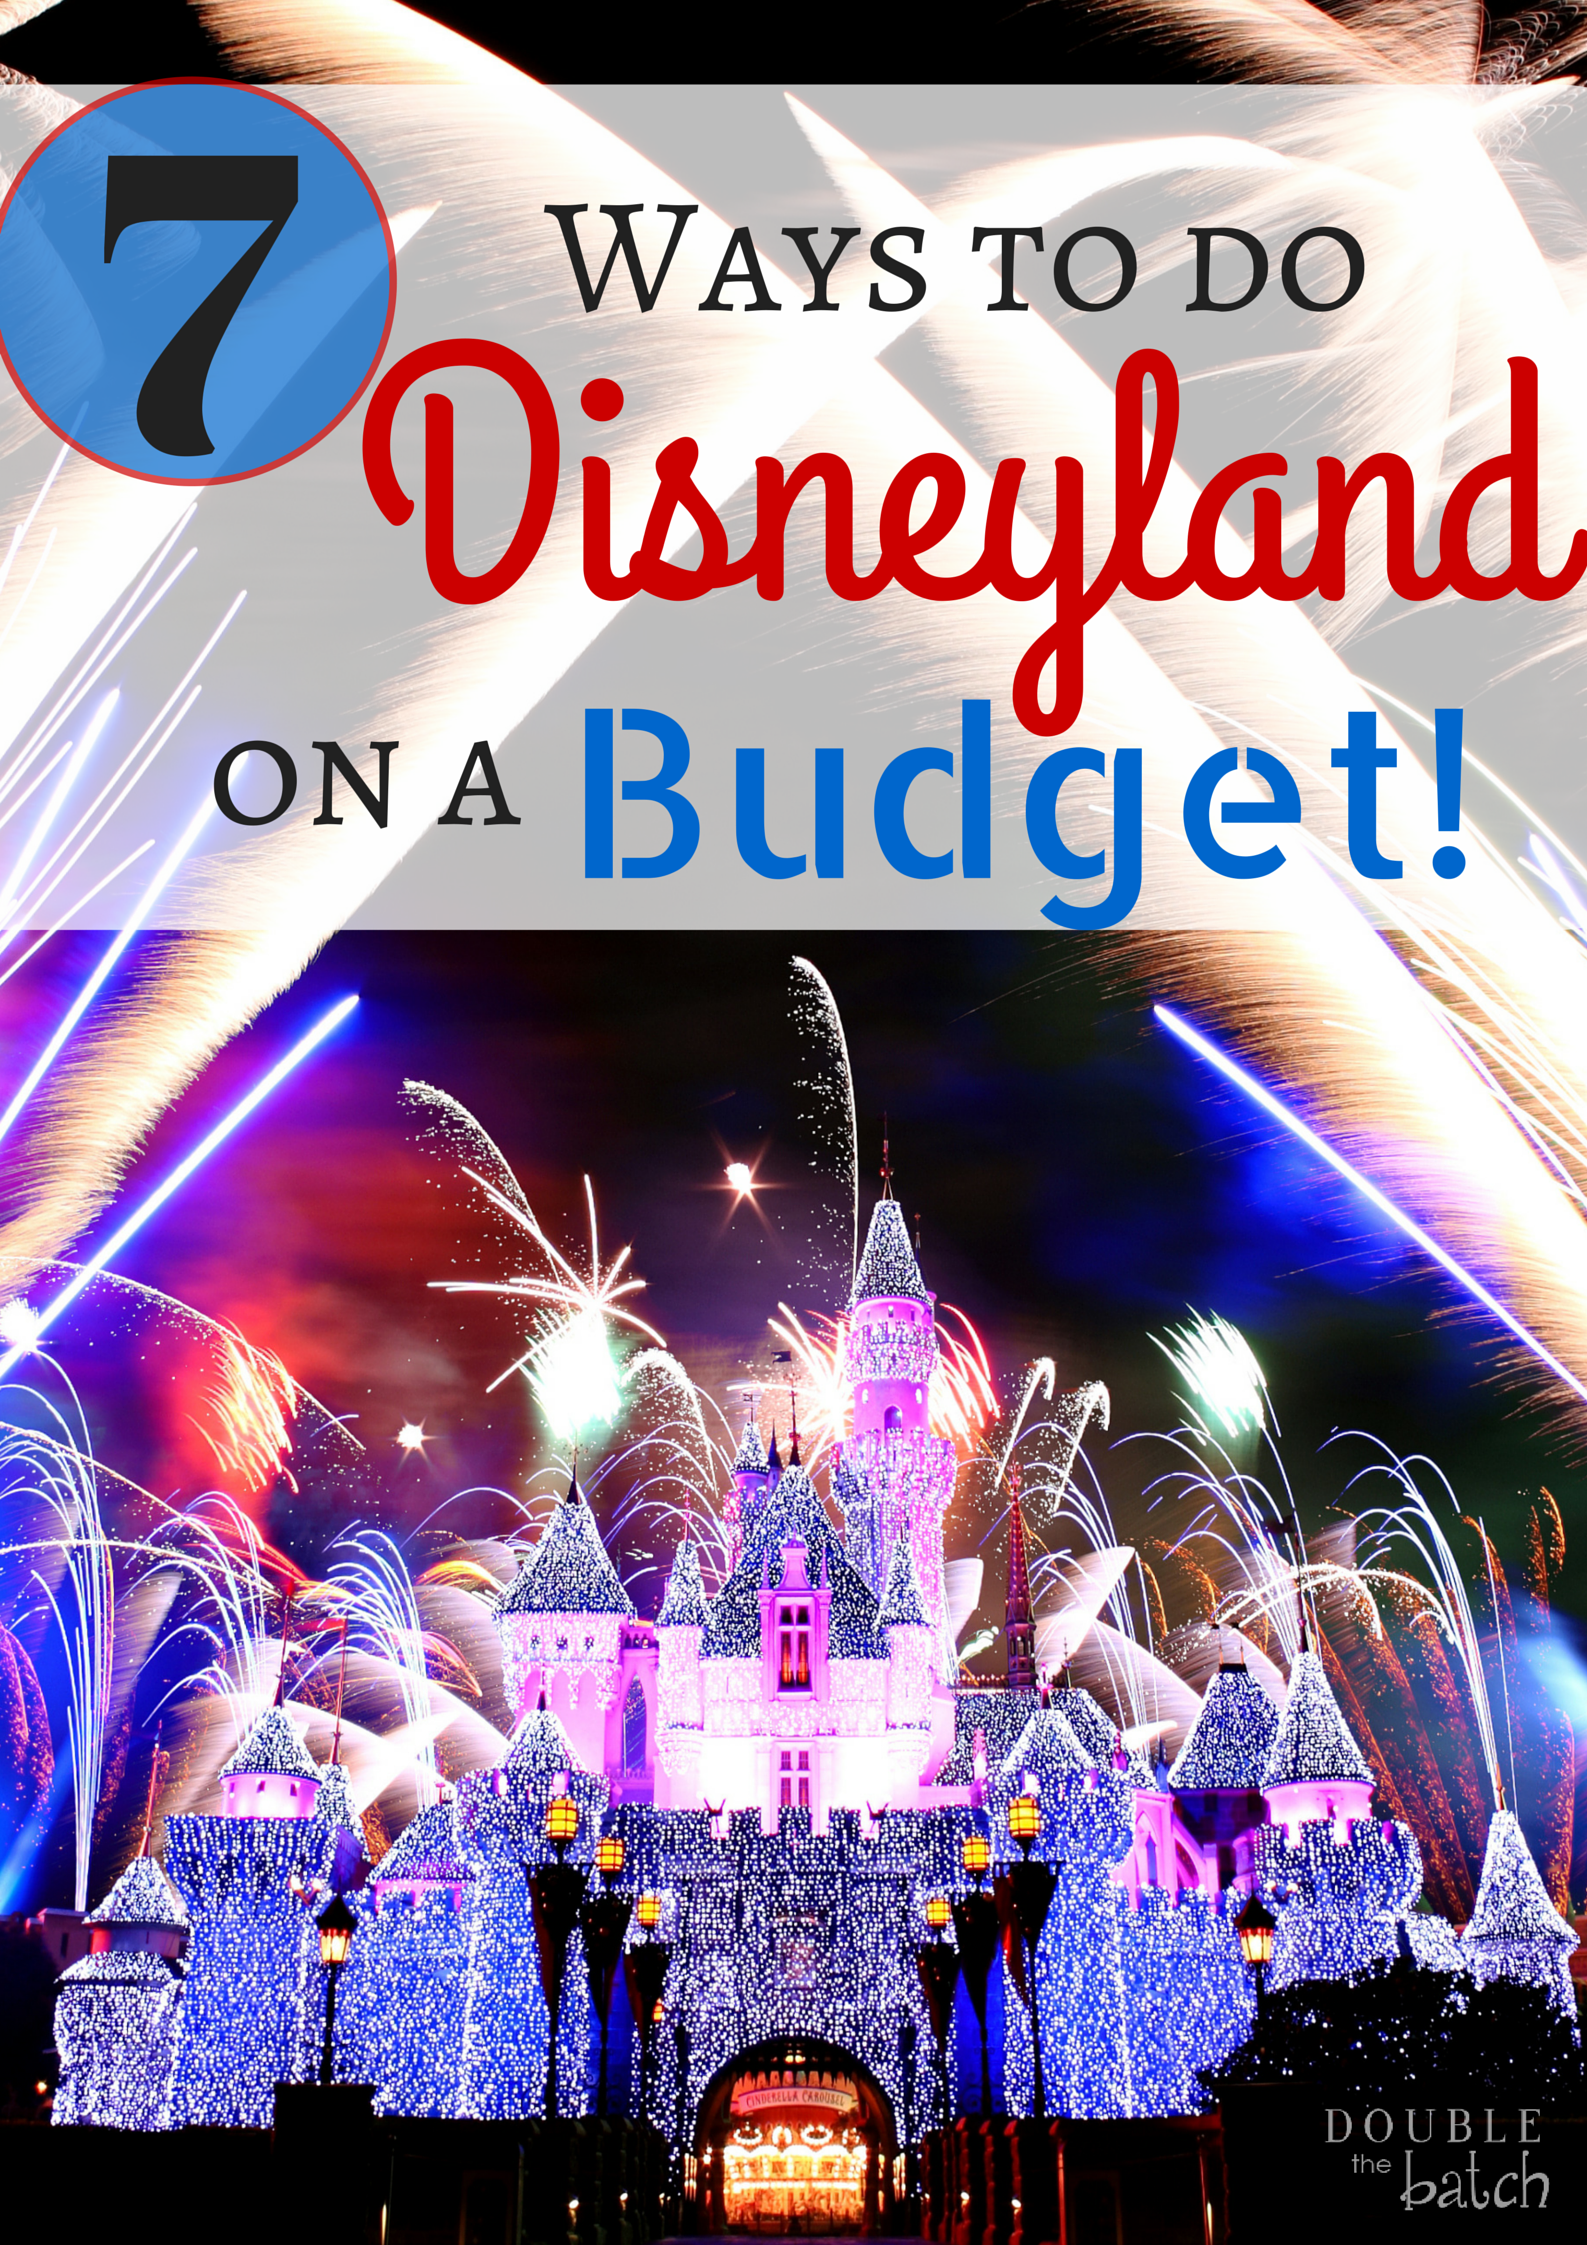 The happiest place on earth just got better! How to do Disneyland on a small budget. My family just went this summer and I learned a lot of things I would do differently next time to save a big wad of cash!